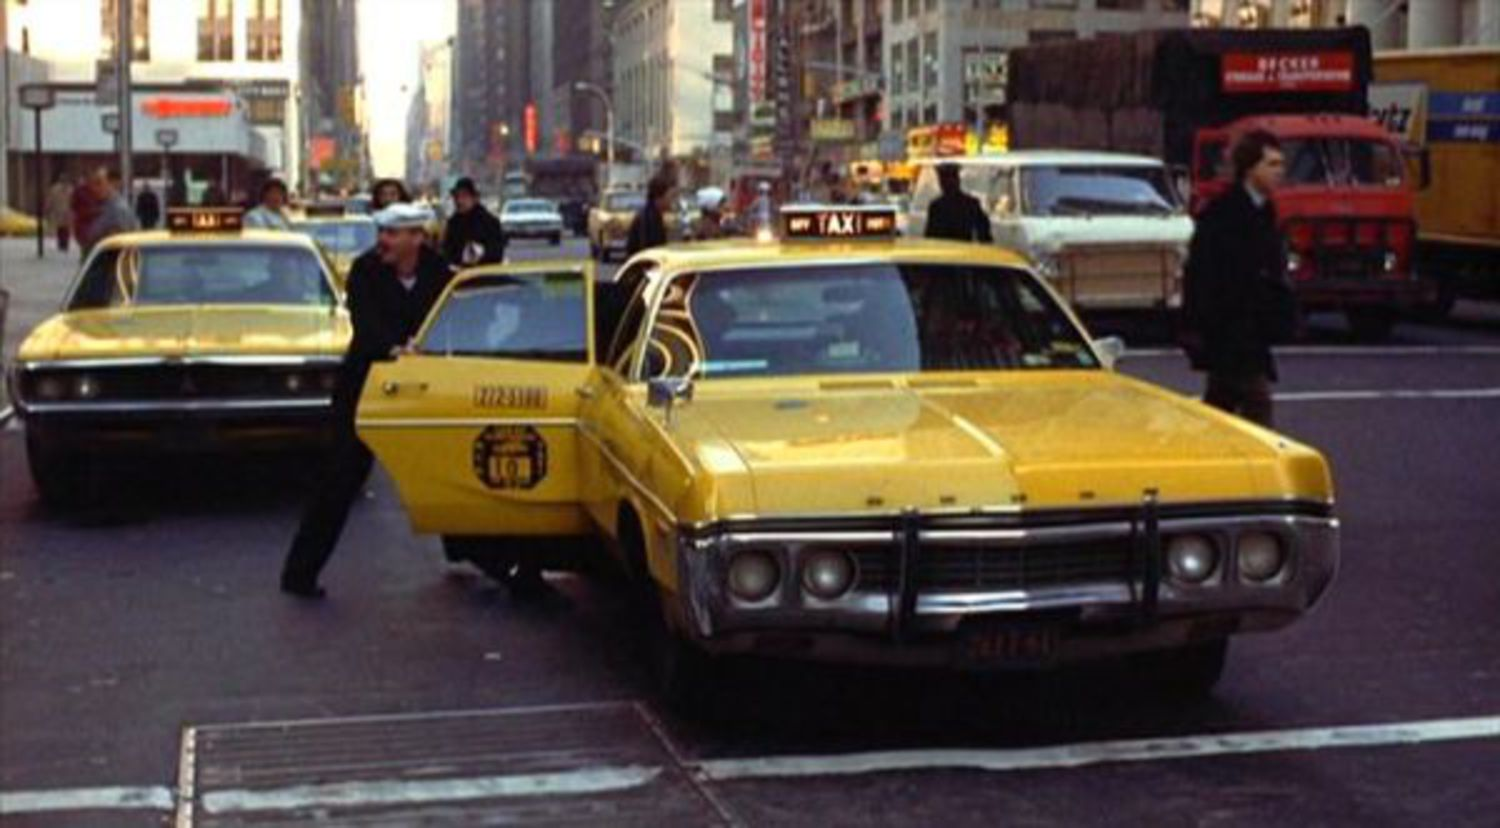 The 1970s: A 'sleazy' low point in cab comfort, cleanliness